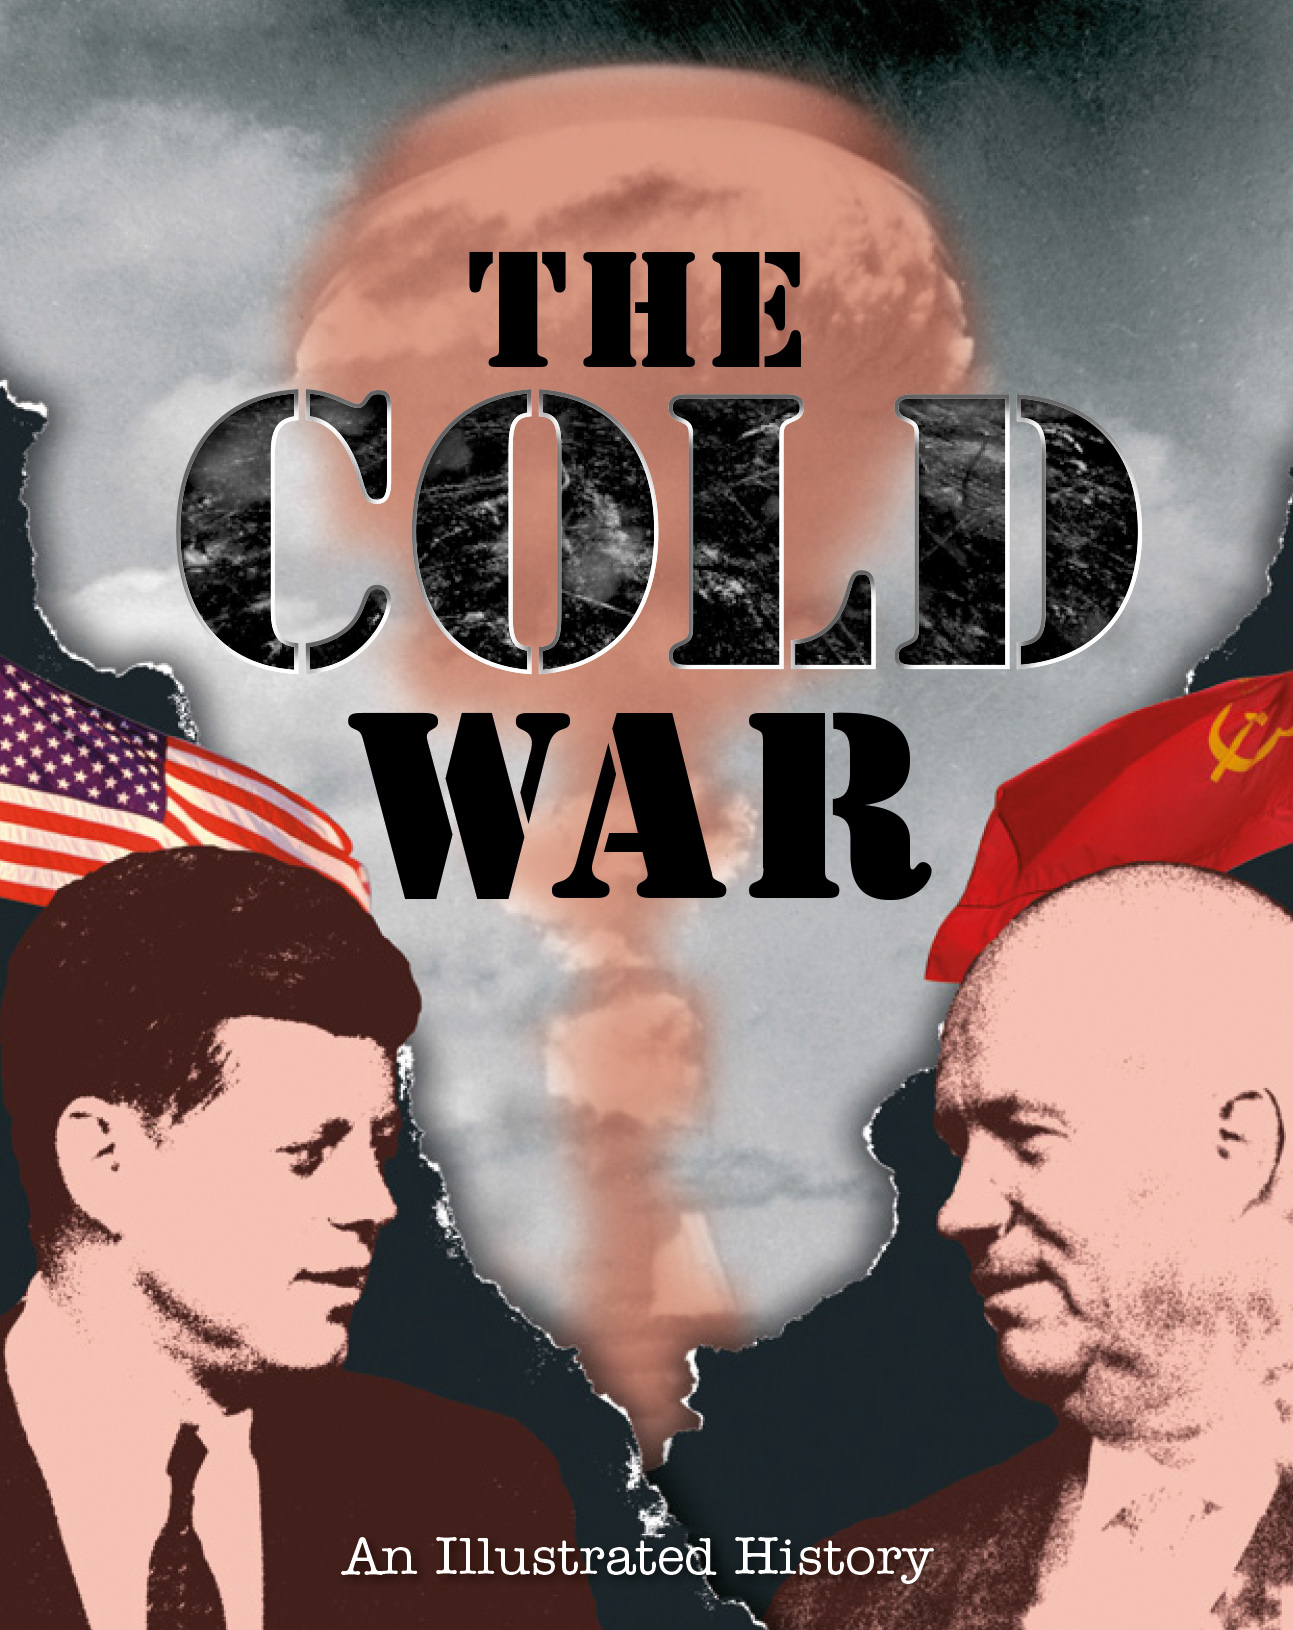 world wars and the cold war The cold war was a long period of tension between the democracies of the western world and the communist countries of eastern europe the west was led by the united states and eastern europe was led by the soviet union.